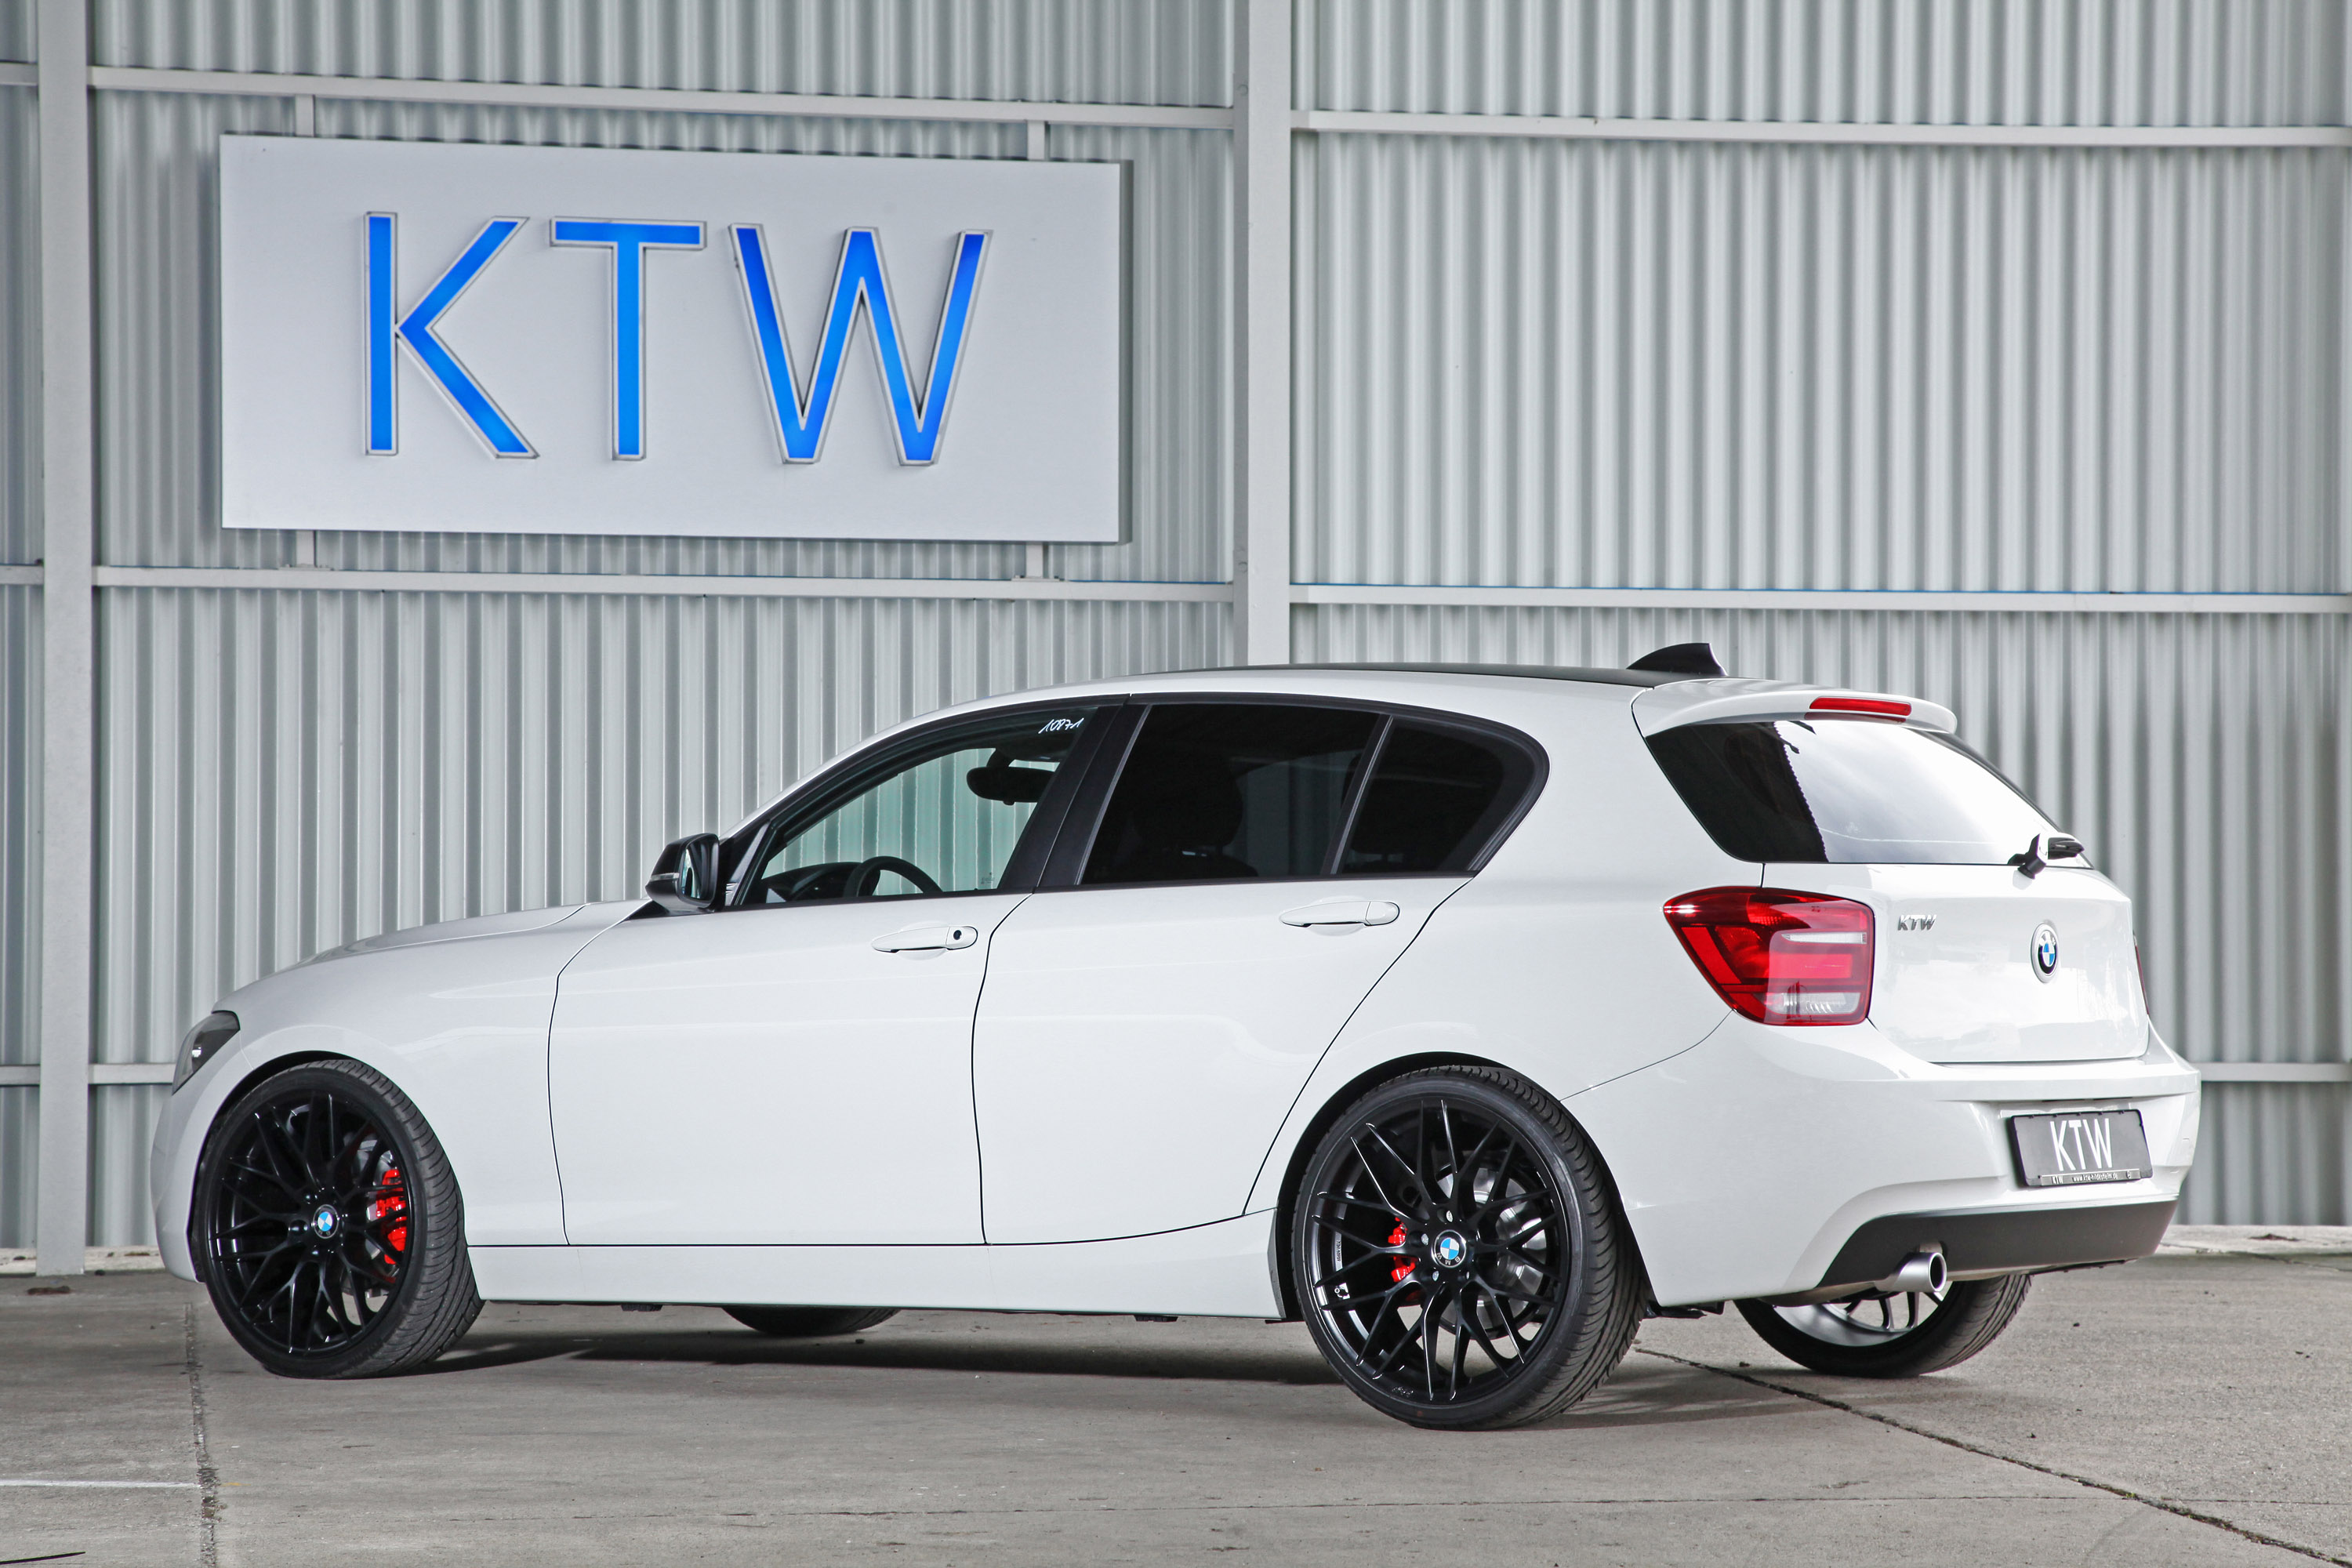 2014 Ktw Tuning Bmw 1 Series Black And White Hd Pictures Carsinvasion Com